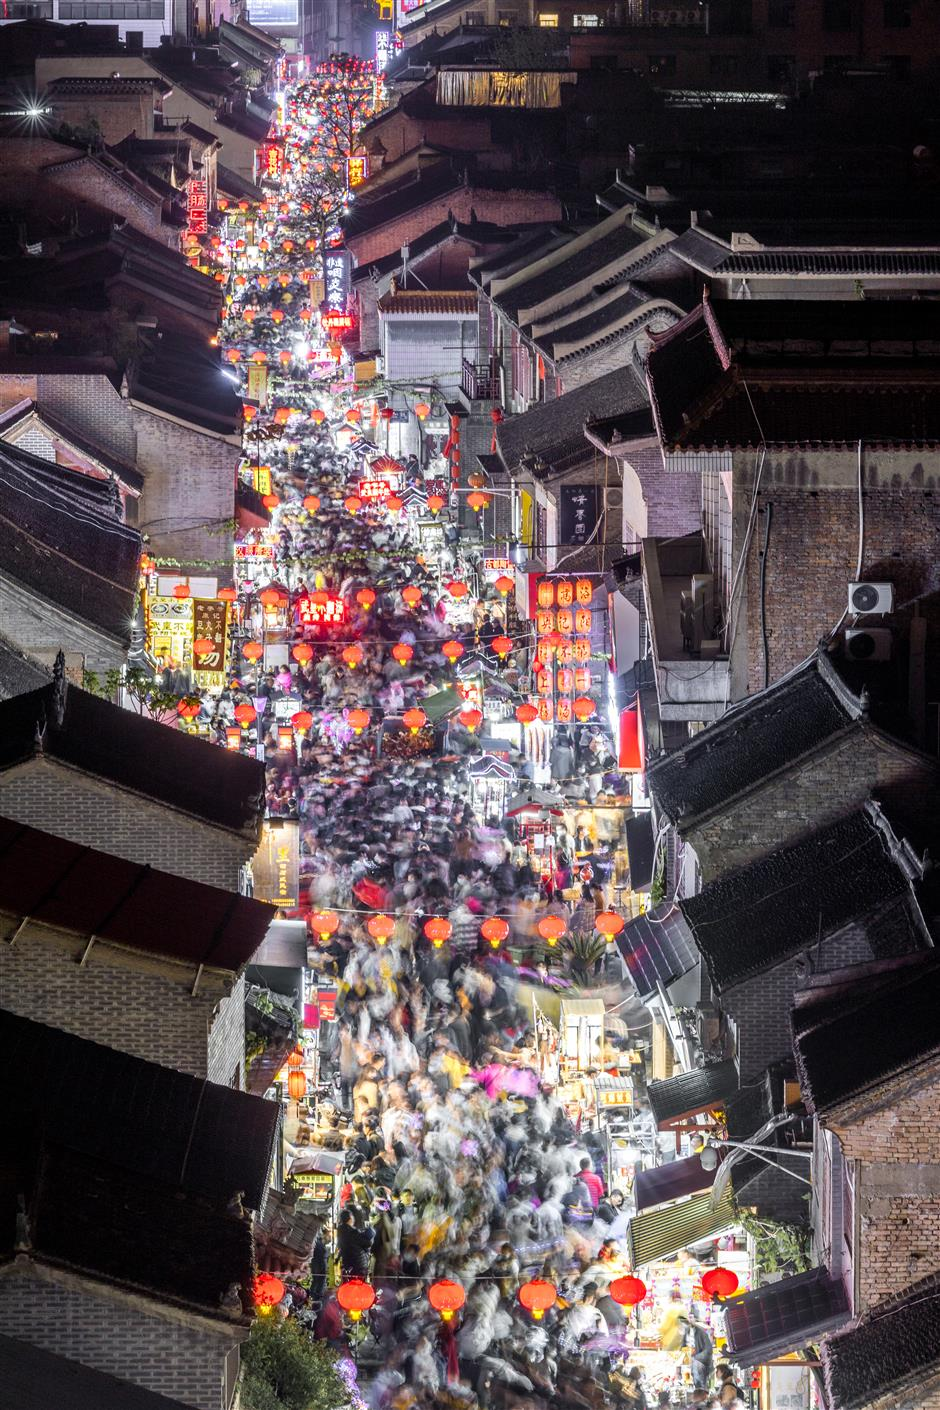 Chinas domestic tourism near pre-epidemic level during Qingming holiday